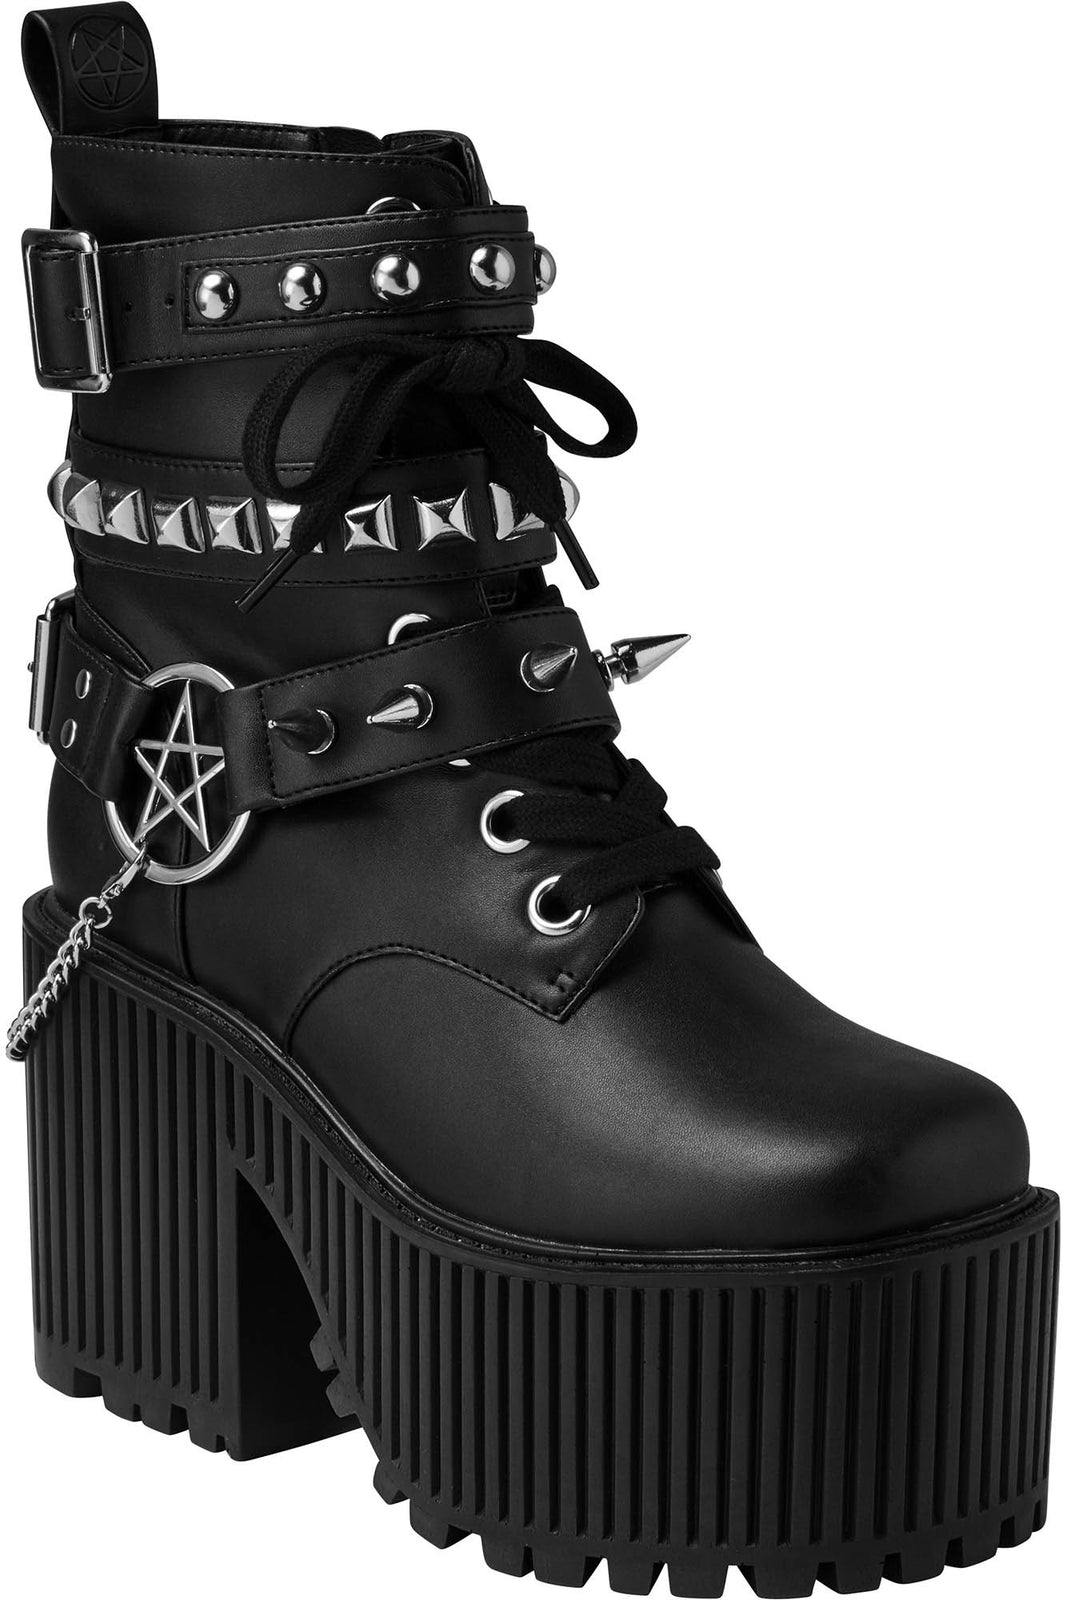 ALICE_STUDDED_BOOTS.mp4